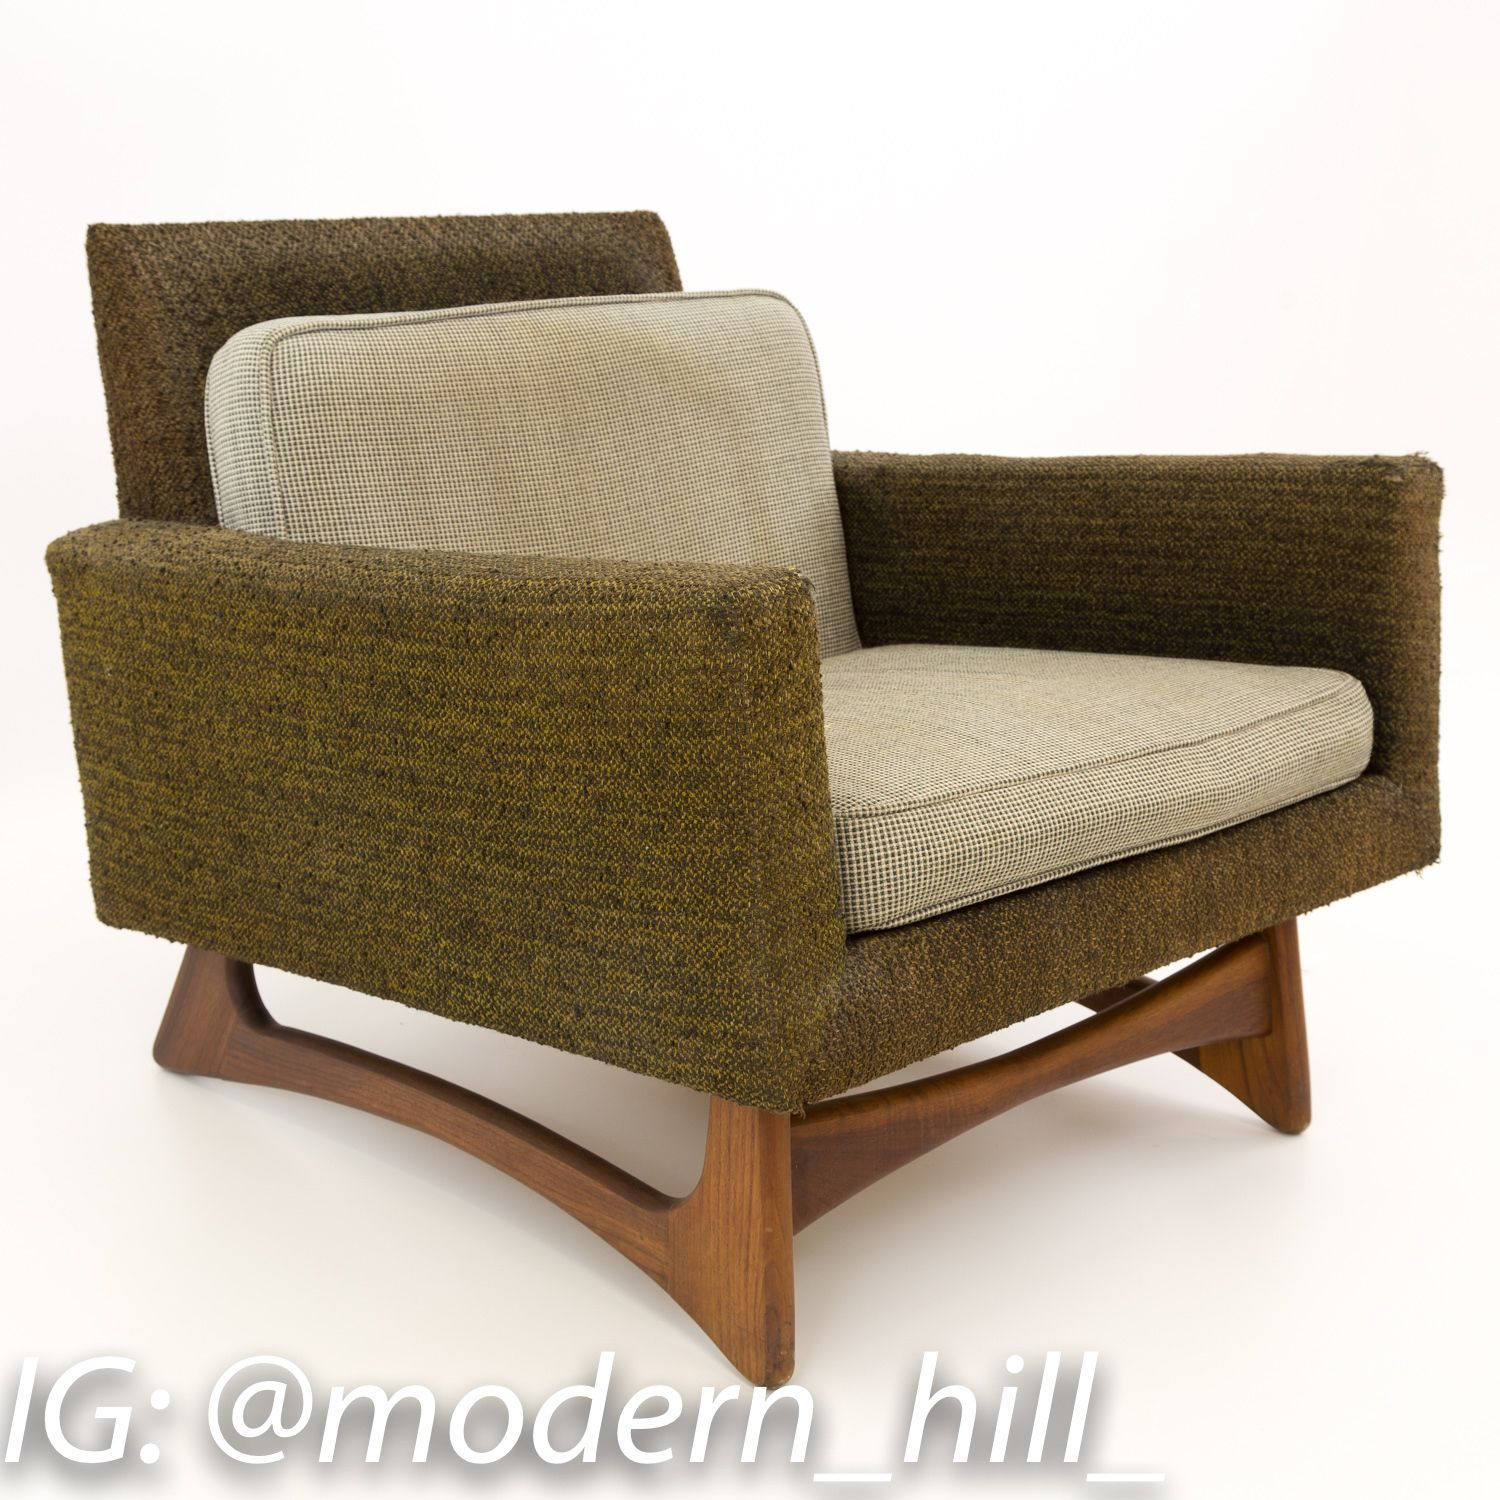 Prime Adrian Pearsall For Craft Associates Mid Century Modern Bralicious Painted Fabric Chair Ideas Braliciousco